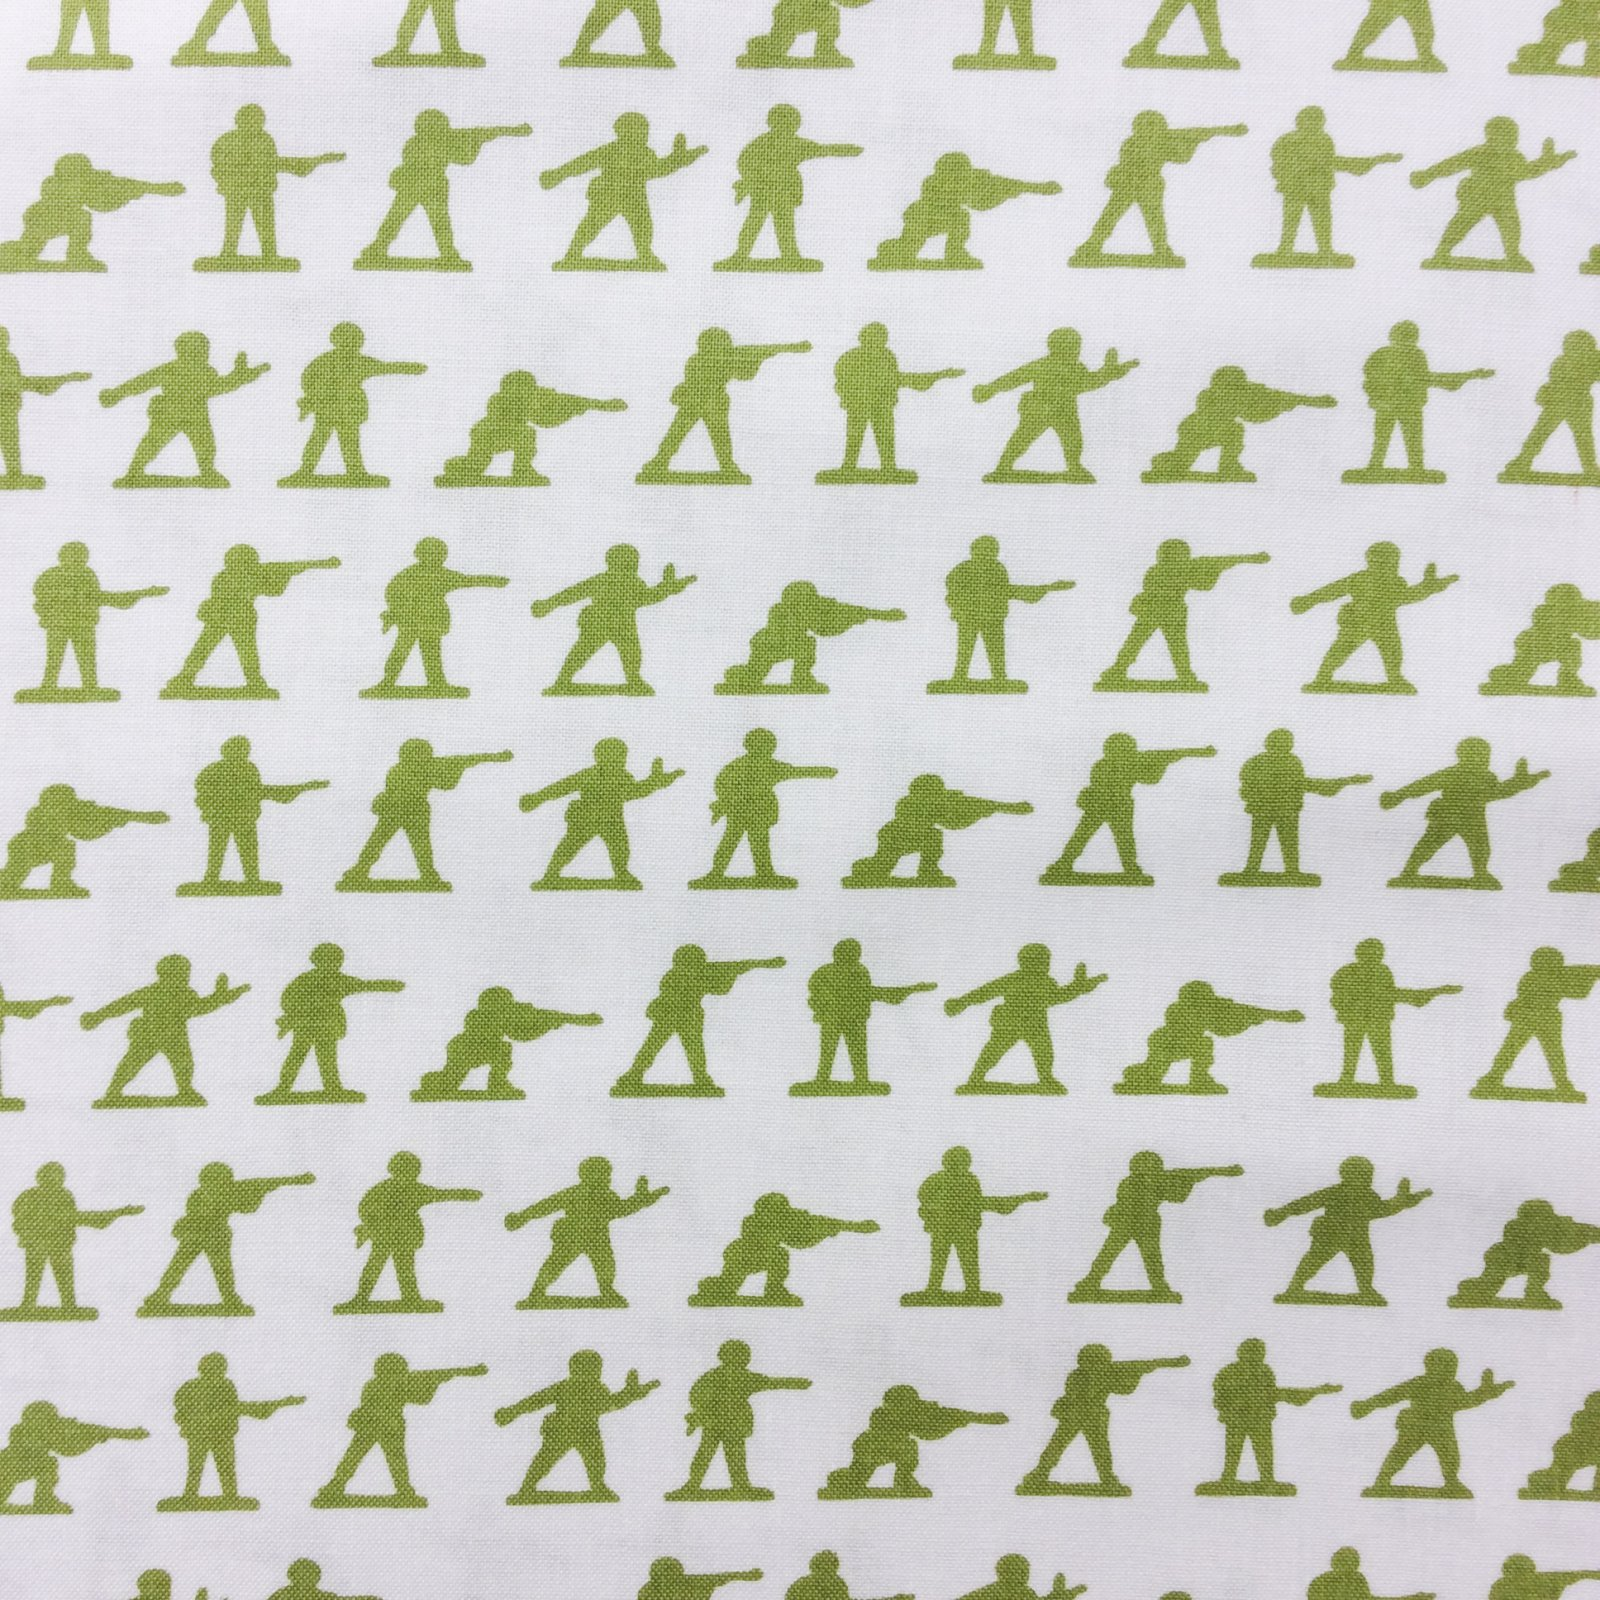 RB59 Tiny Toy Soldiers Retro Quilt Cotton Quilting Fabric